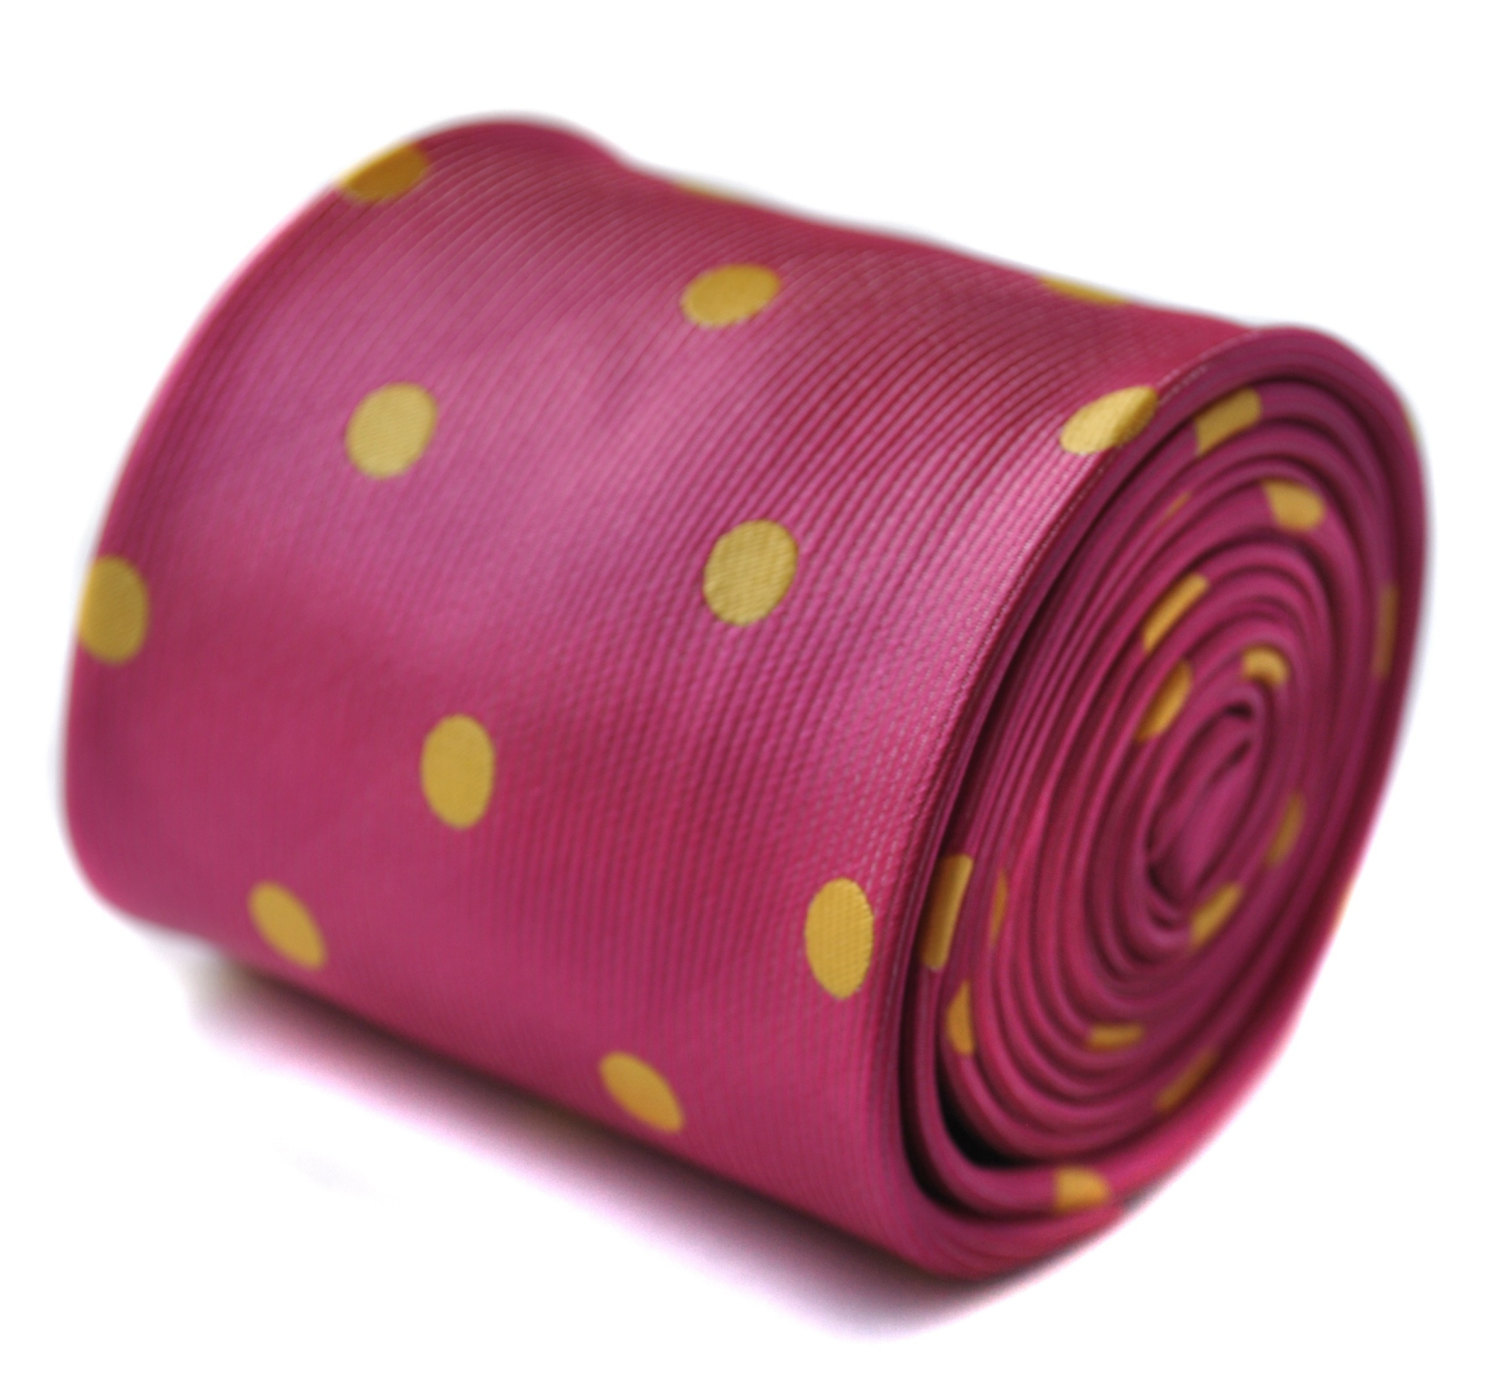 bright pink and yellow polka spot tie with signature floral design to the rear b